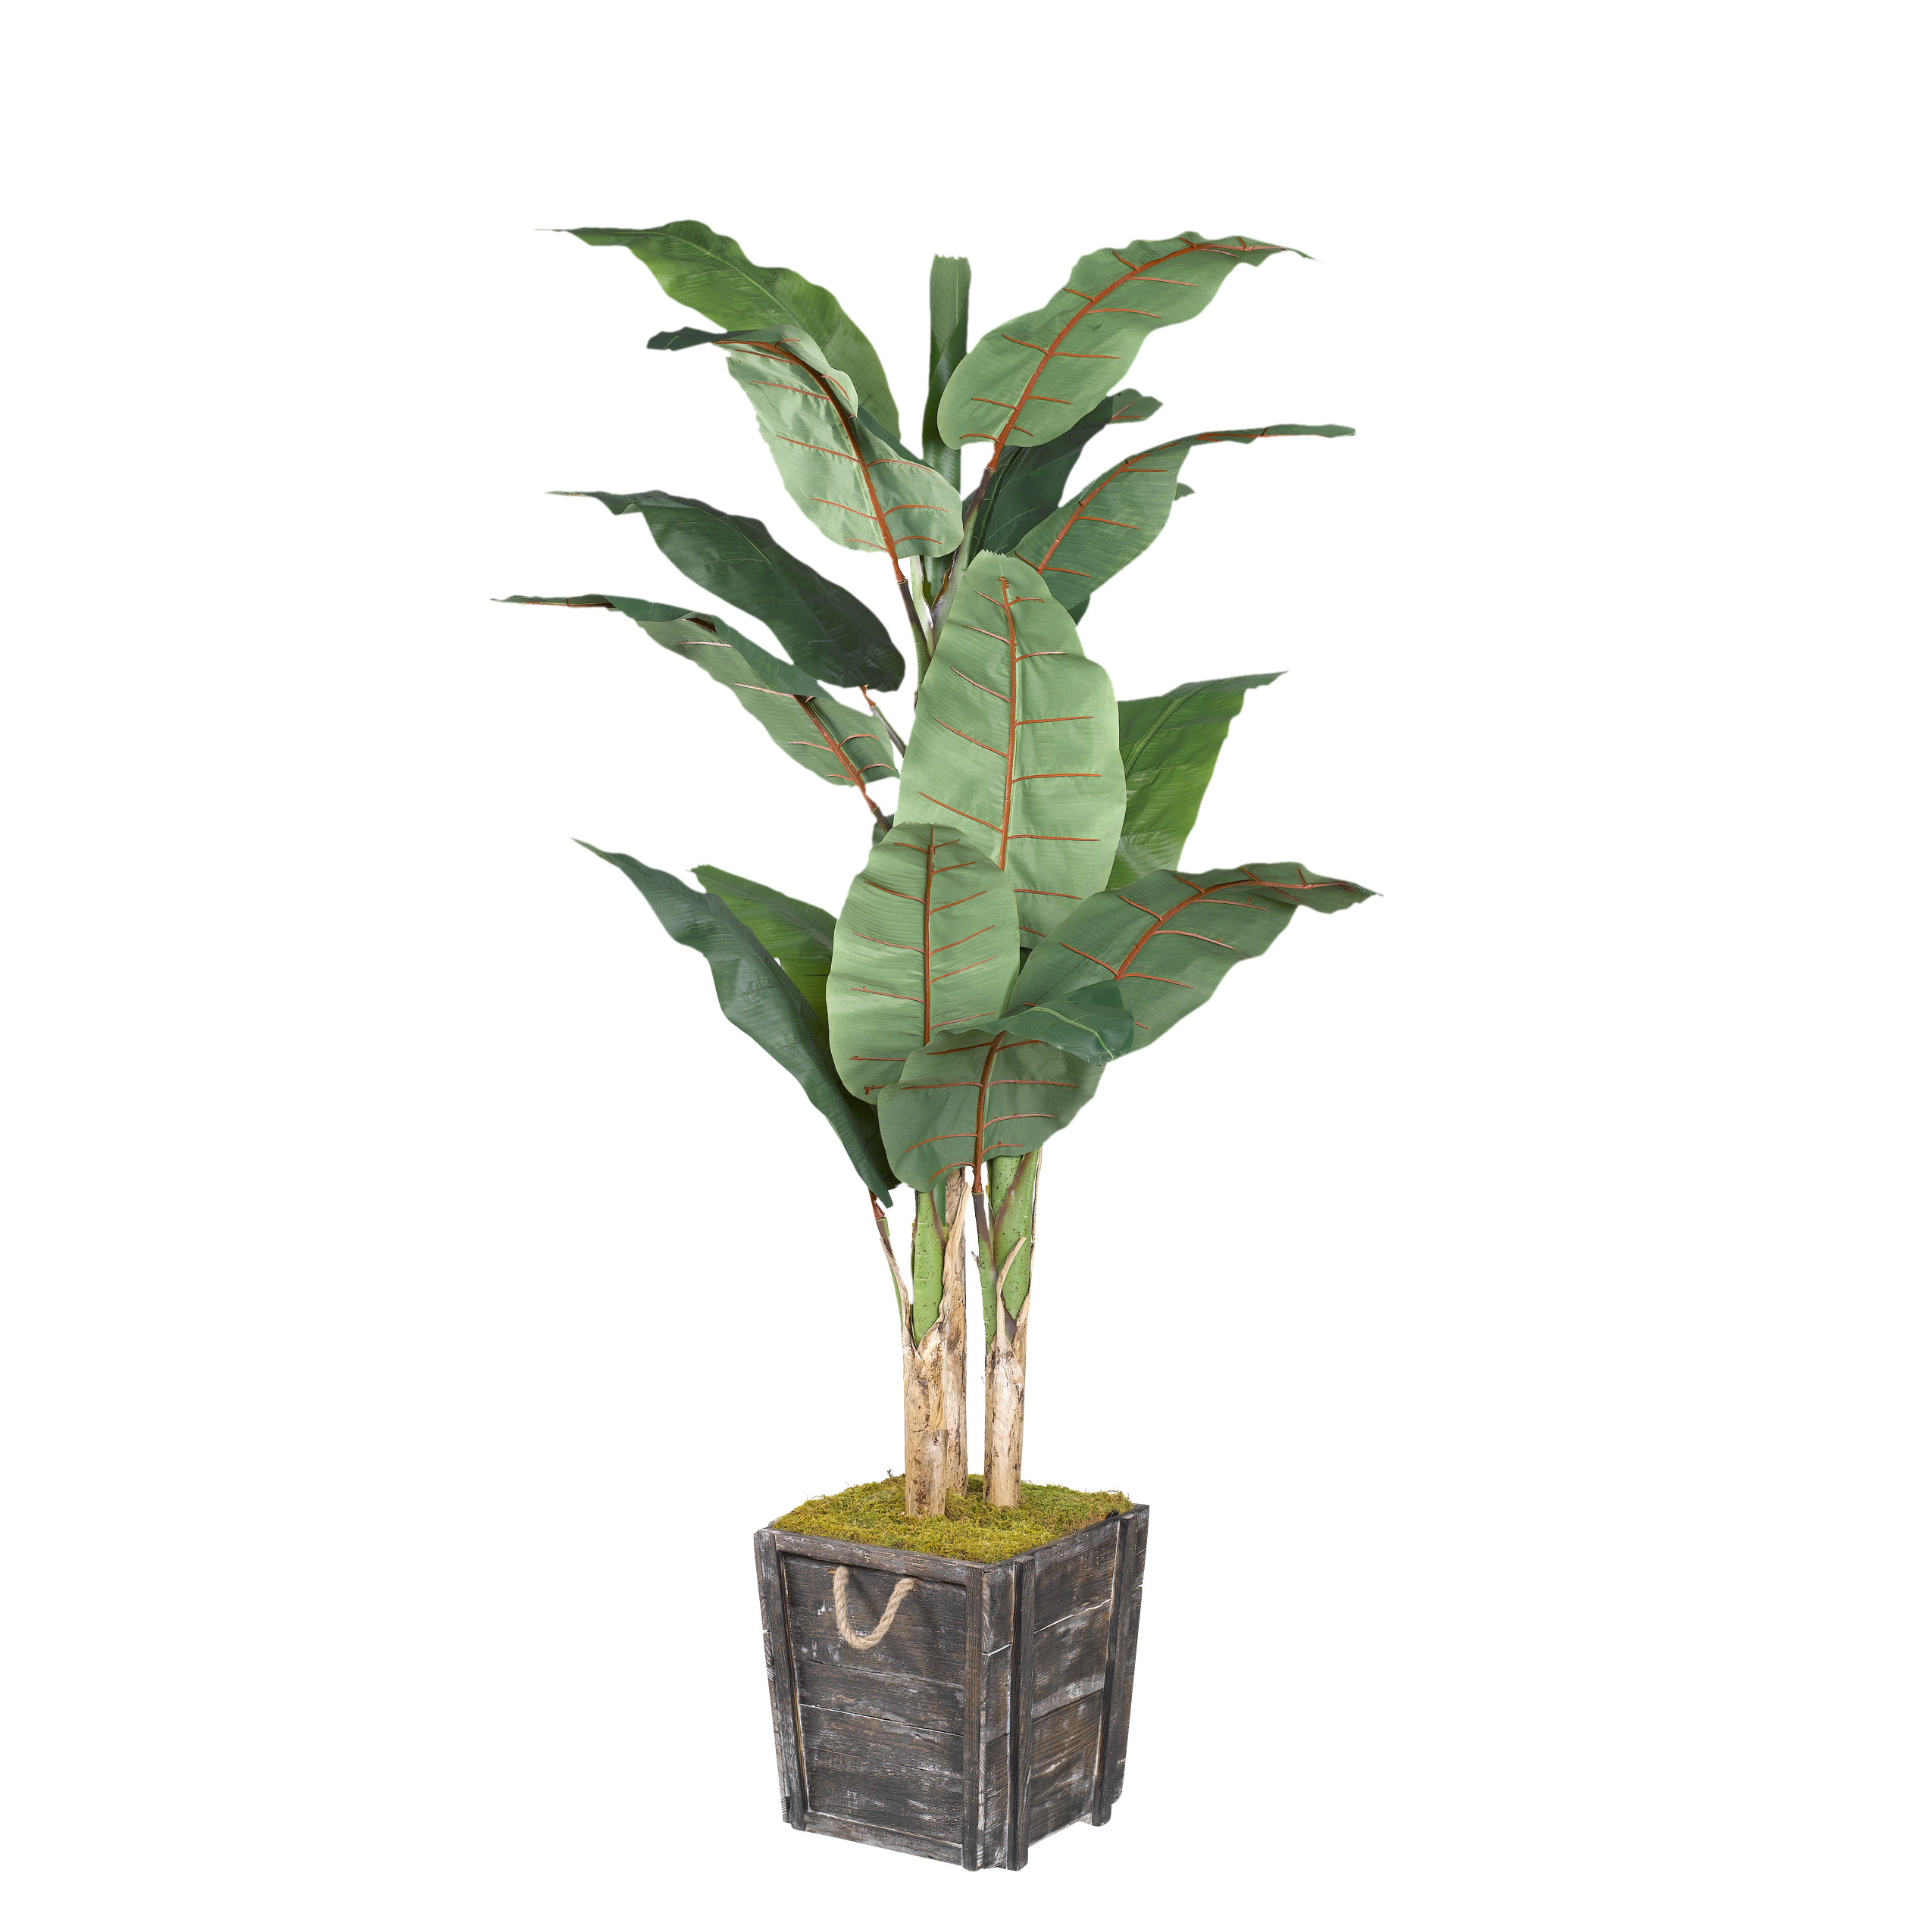 D&W Silks Banana Tree in Rustic Wooden Planter Box with Rope Handles